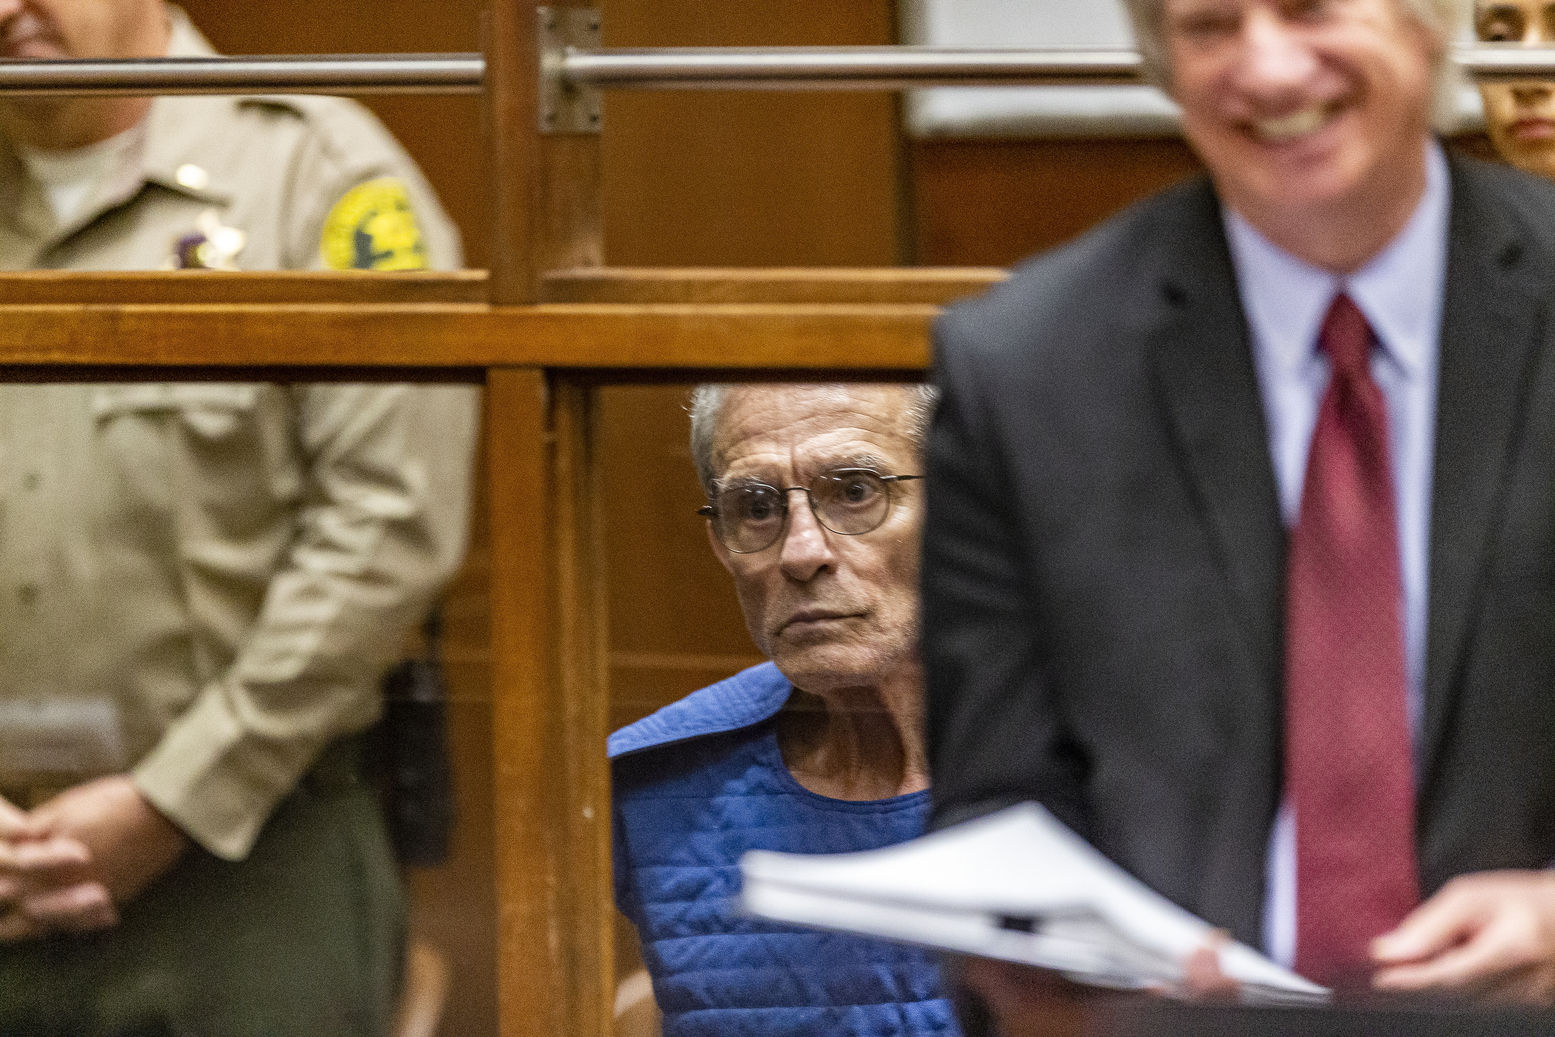 Edward Buck appears in Los Angeles Superior Court, Thursday, Sept. 19, 2019, in Los Angeles. The prominent LGBTQ political activist was arrested Tuesday and charged with operating a drug house and providing methamphetamine to a 37-year-old man who overdosed on Sept. 11, but survived, officials said. Two other men have died in his apartment since 2017. (AP Photo/Damian Dovarganes)